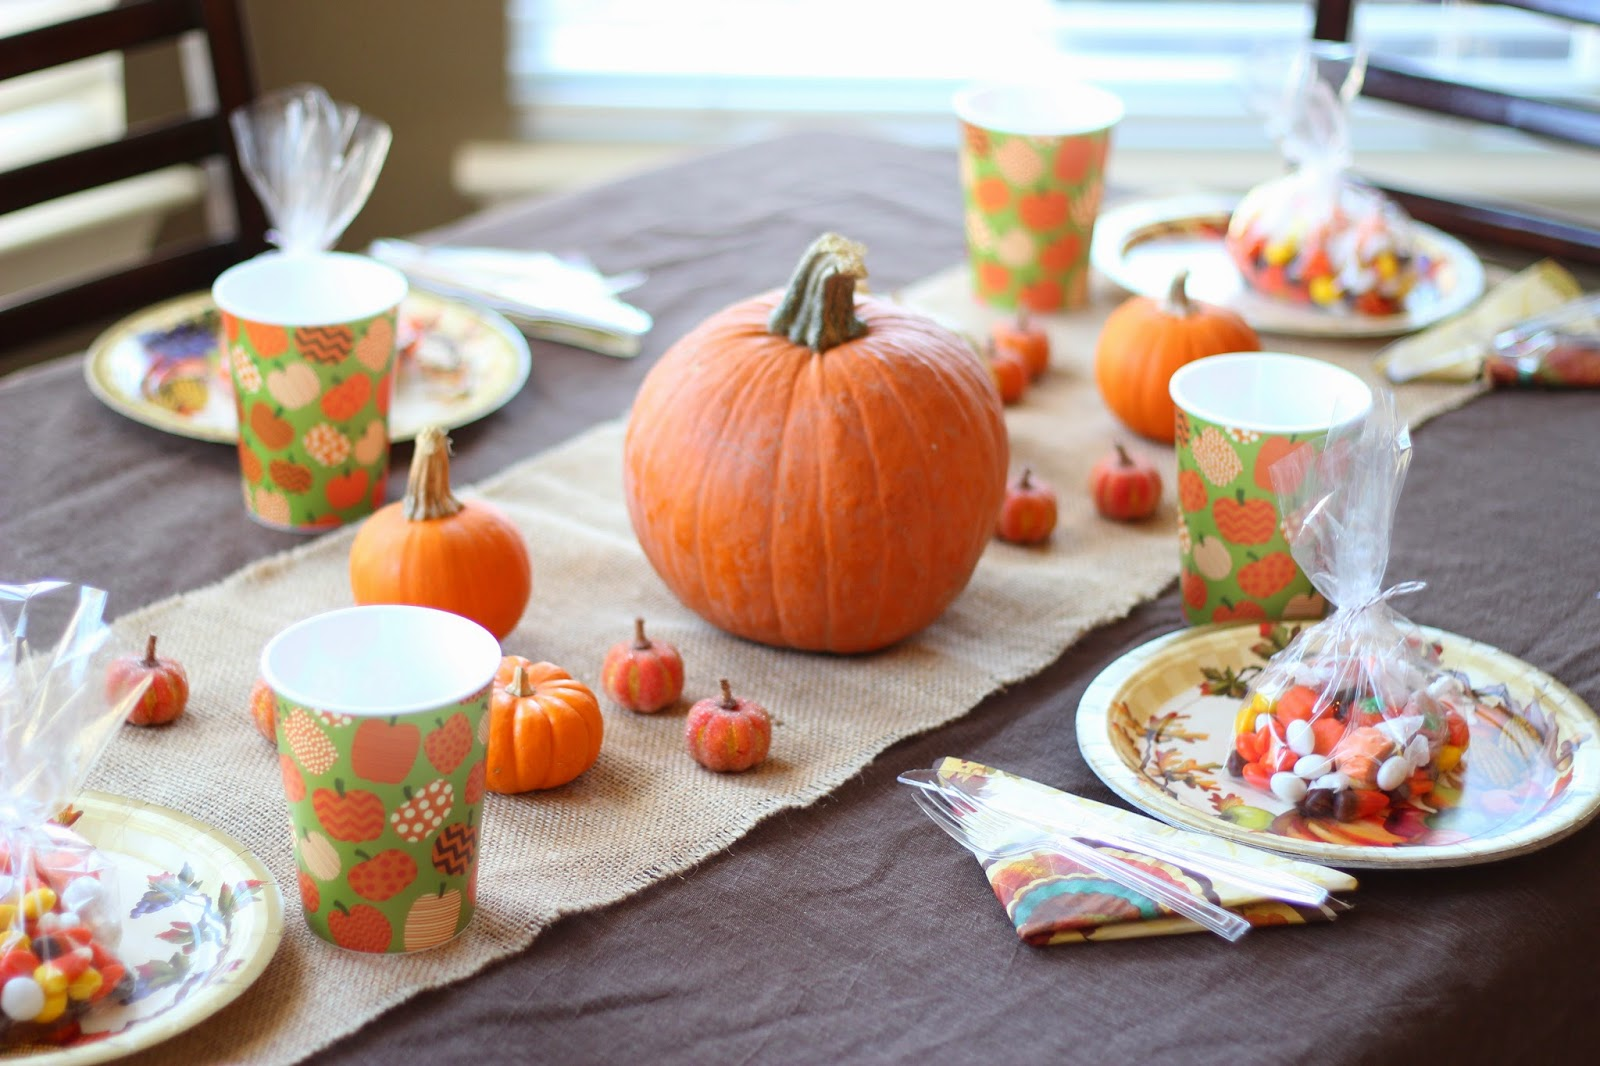 decorations riverton style decor fakesgiving thanksgiving table of housewives